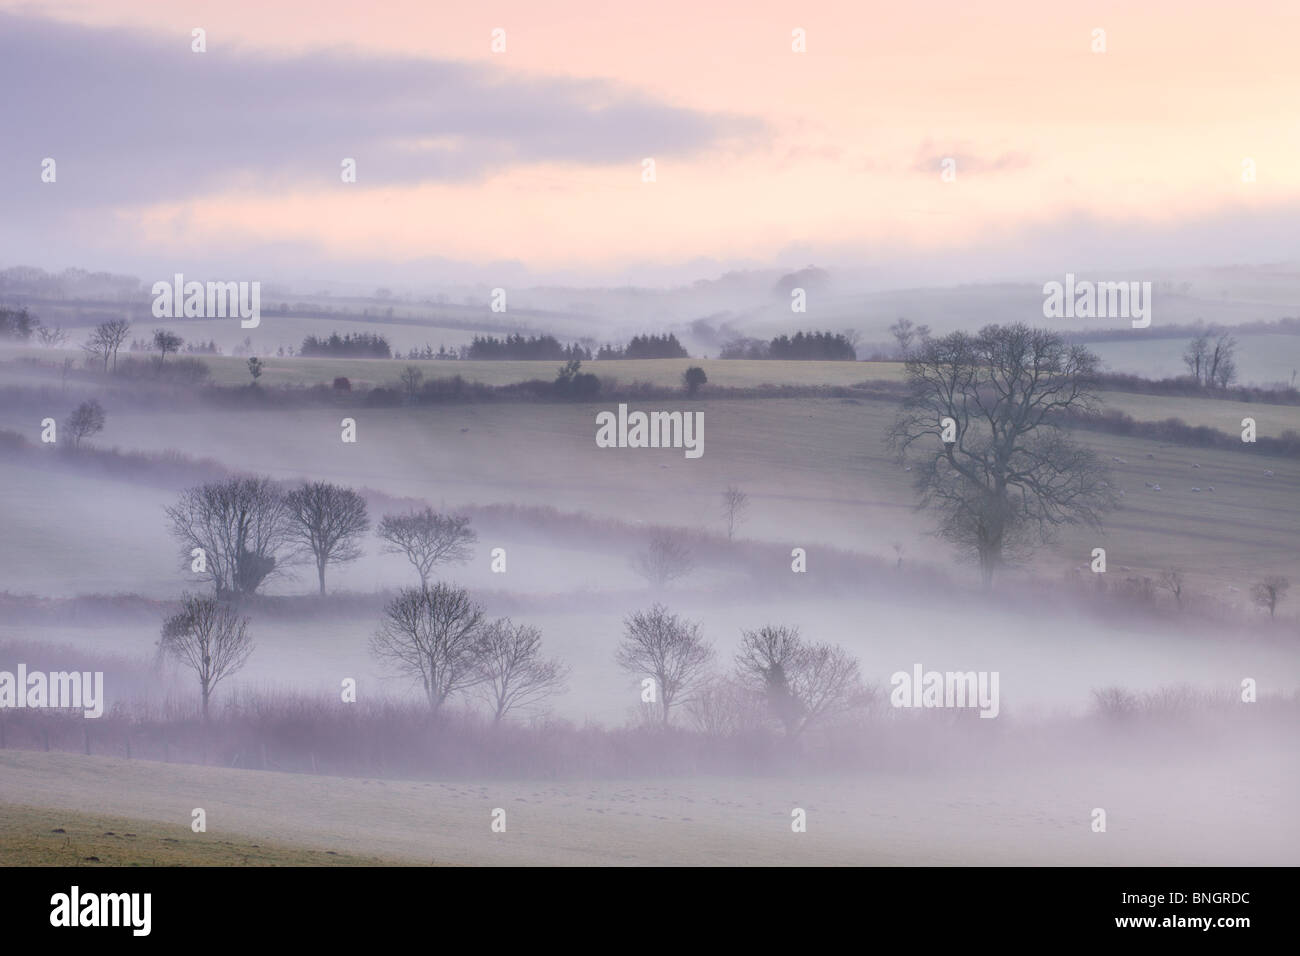 Mist lingers over the landscape by the Flitton Oak, Exmoor National Park, North Molton, Devon, England. Winter (February) - Stock Image